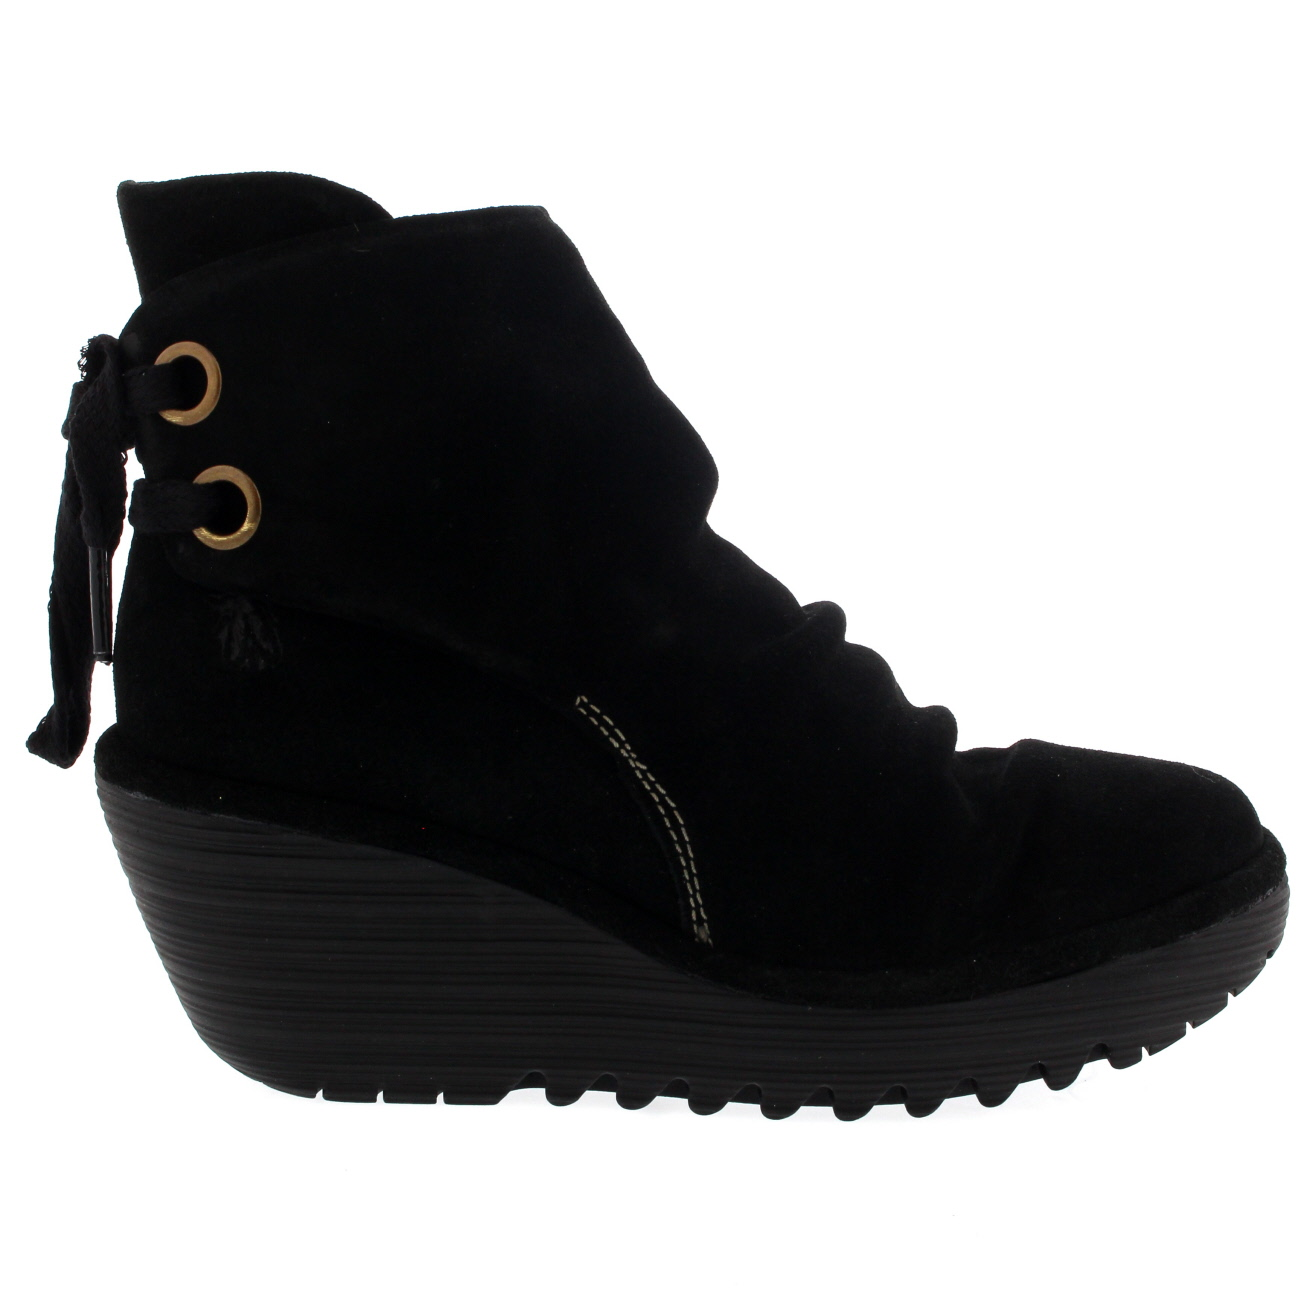 Damenschuhe Fly London Yama Lace Up Oil Suede Winter Wedge 5-12 Heel Ankle Stiefel US 5-12 Wedge b27e90